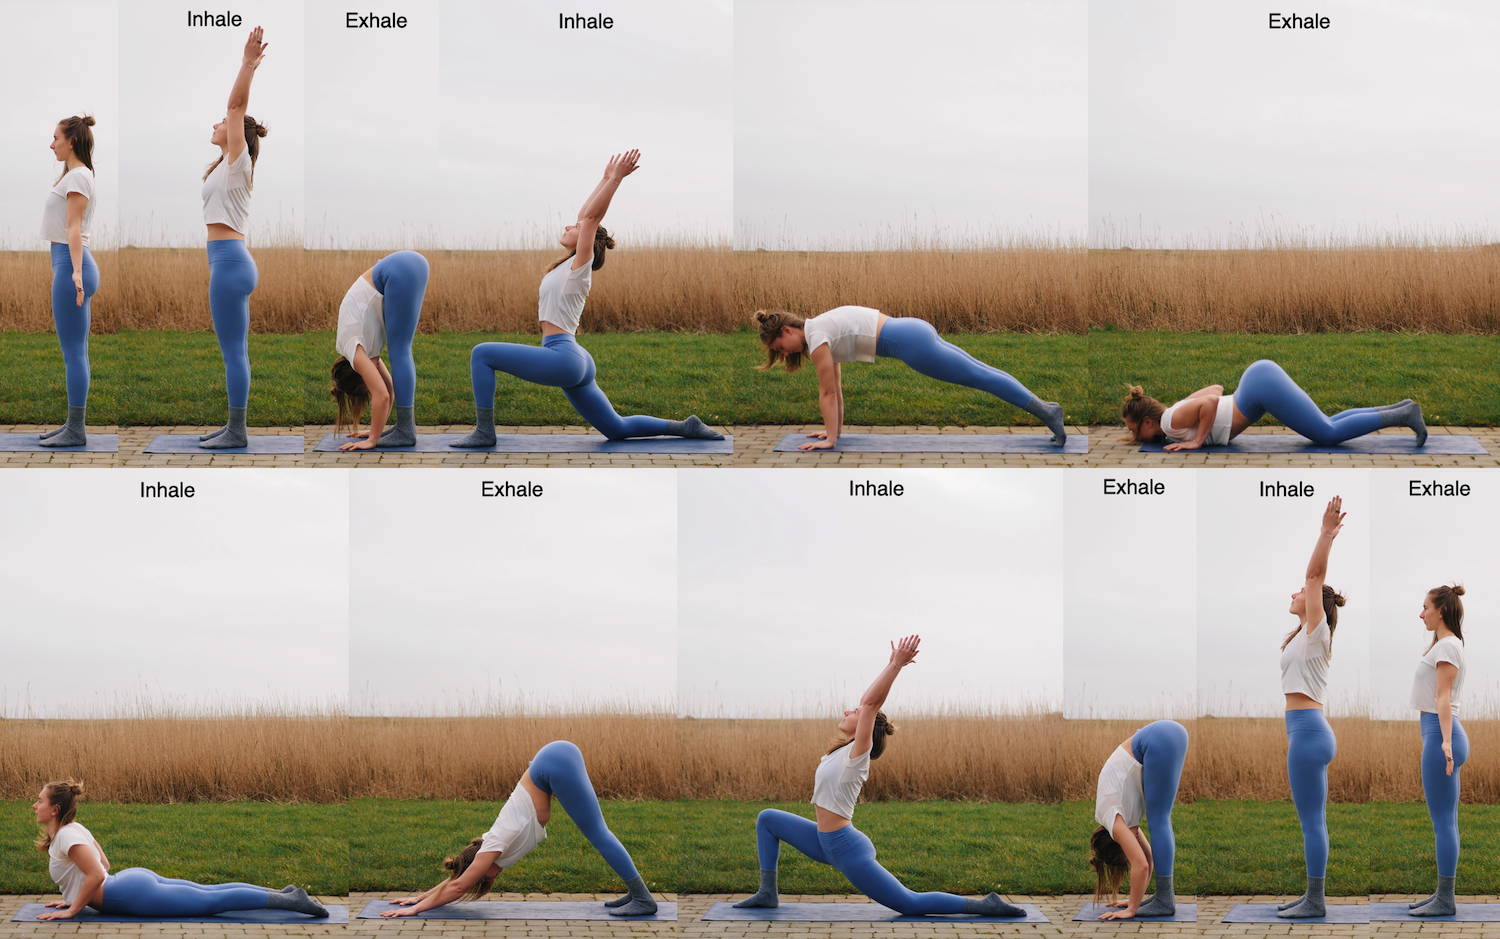 Camilla showing the yoga pose sequence of the classical sun salutation